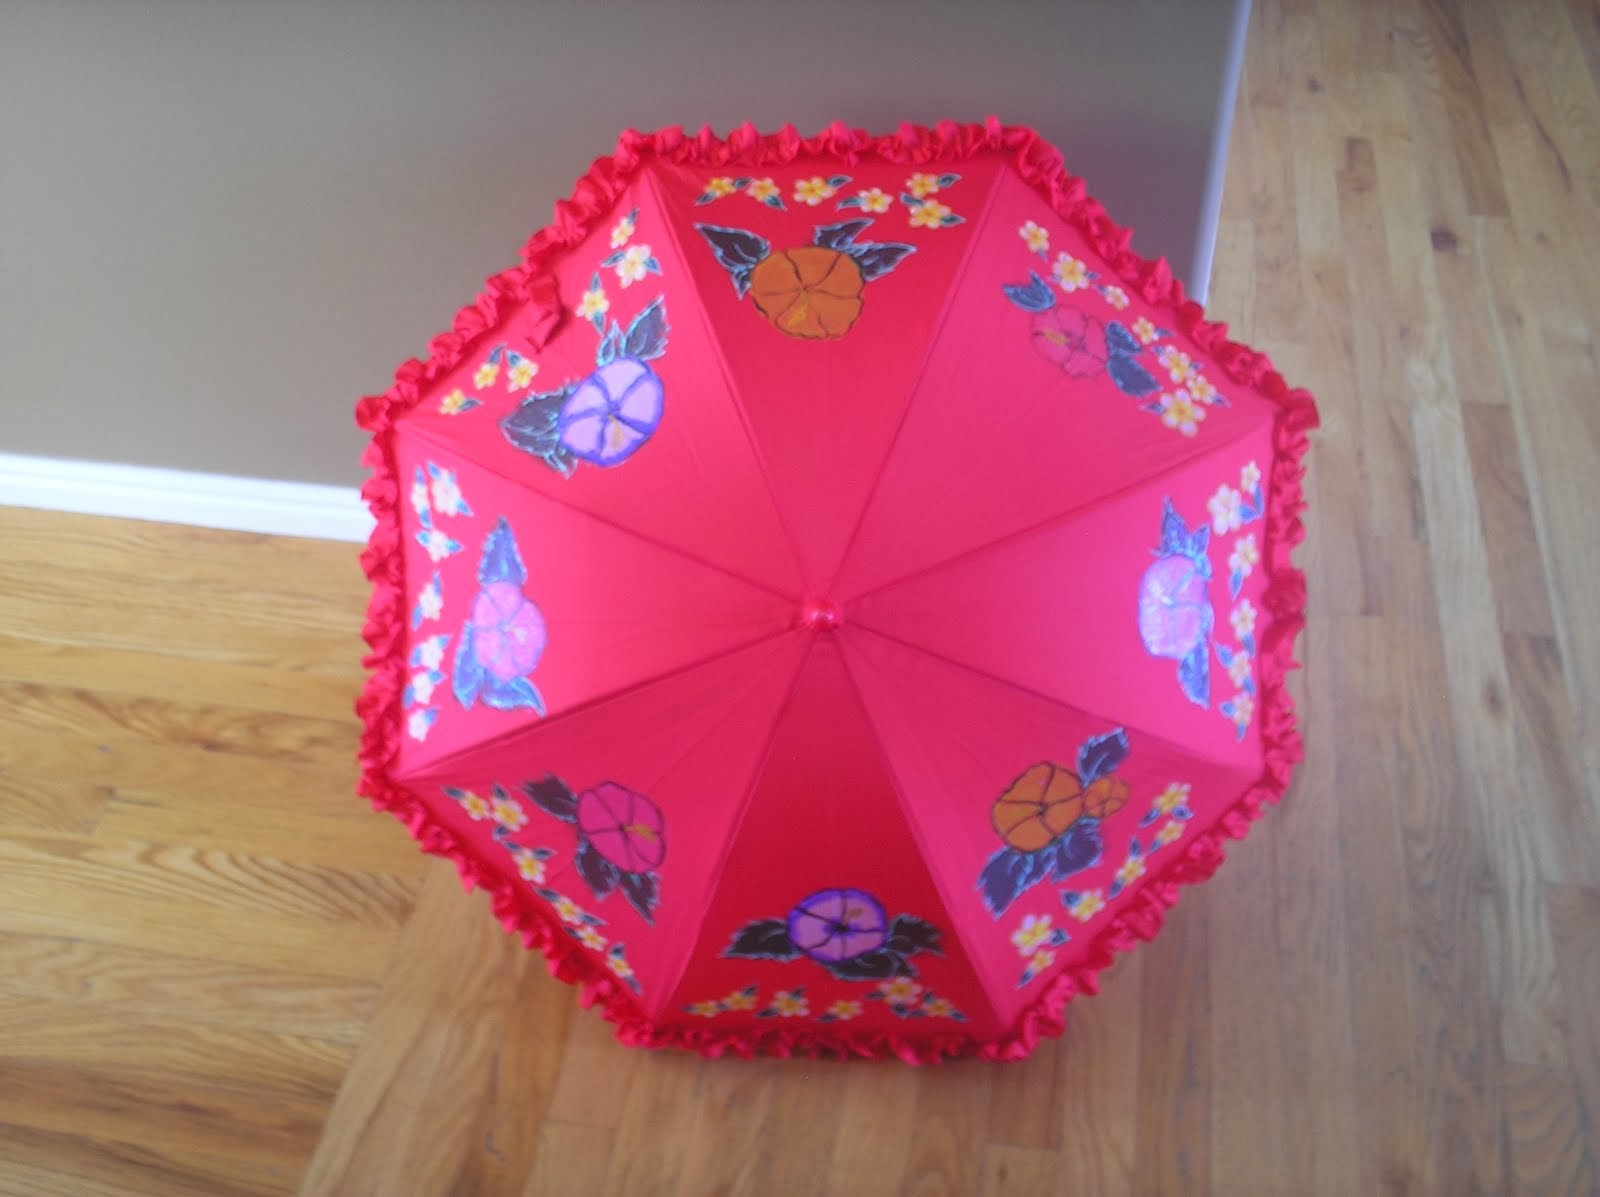 small red parasol